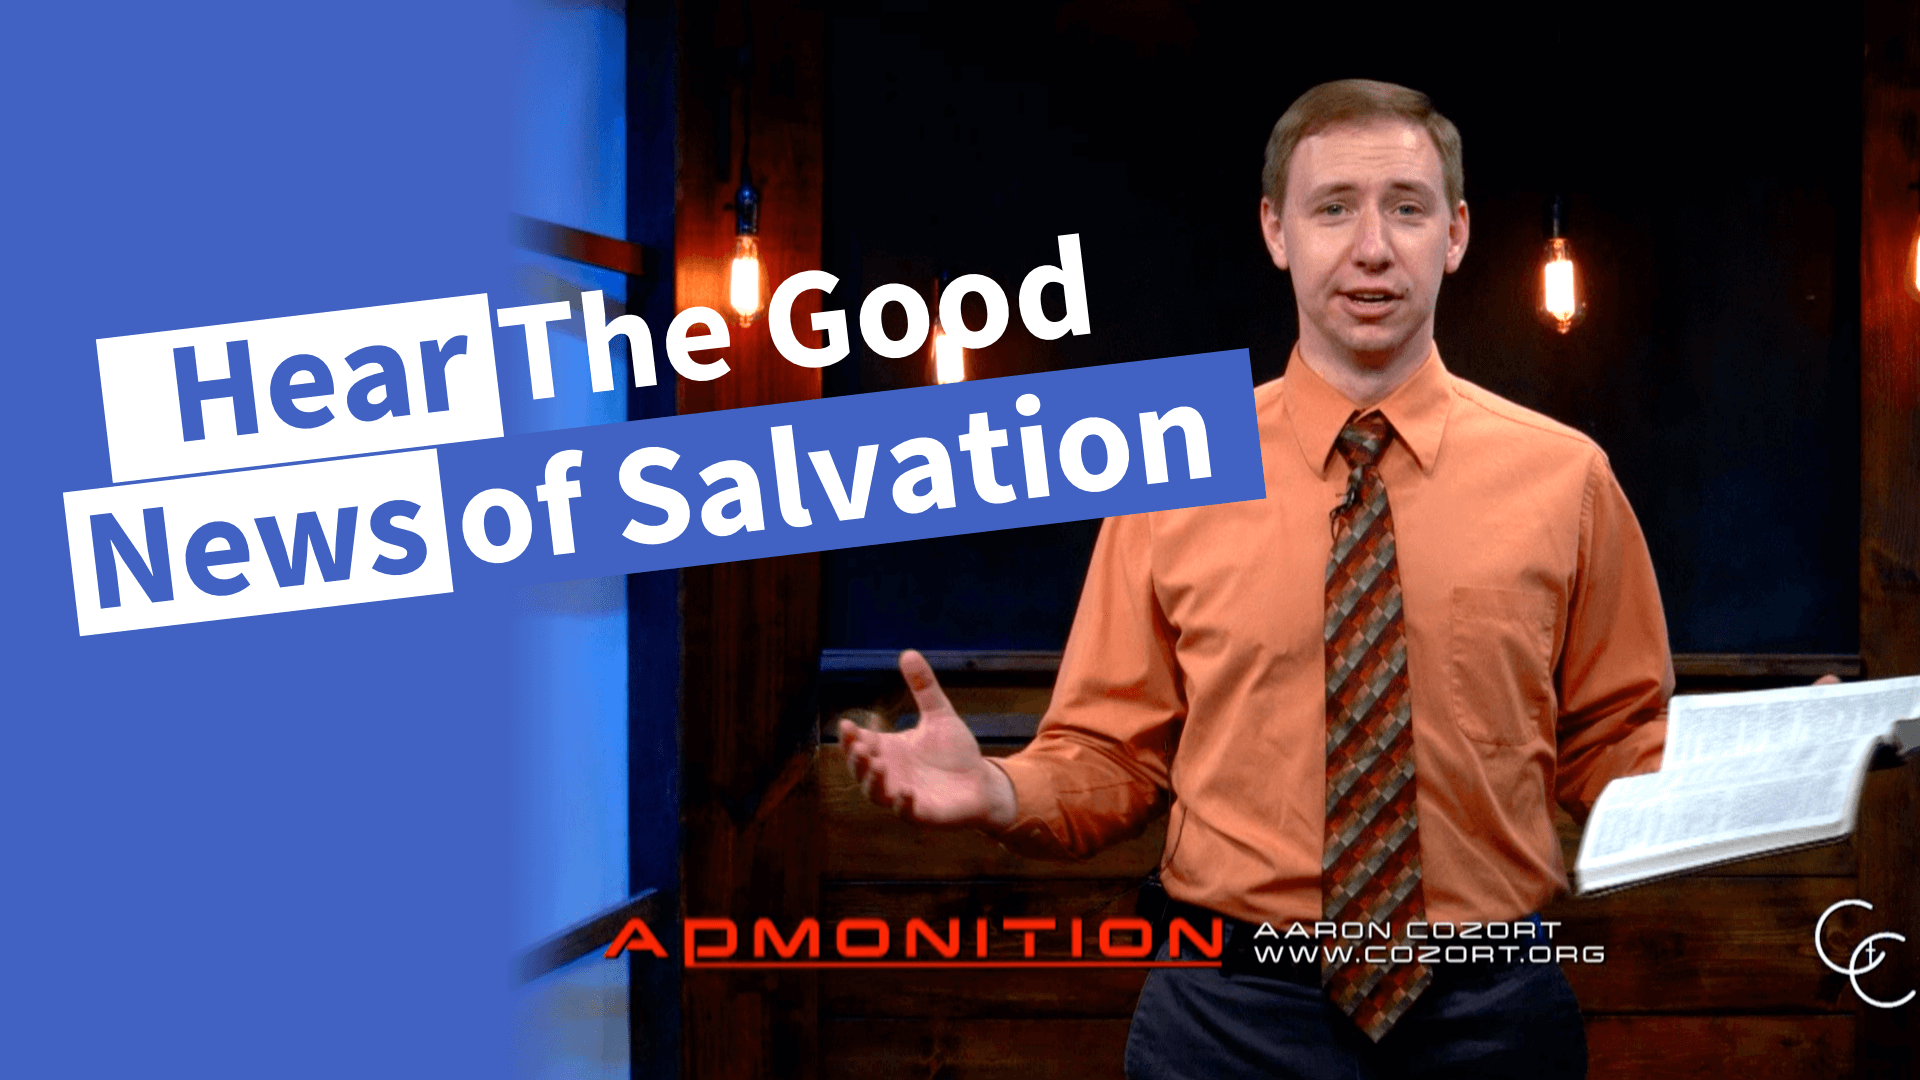 """Featured image for """"Hear The Good News Of Salvation"""""""